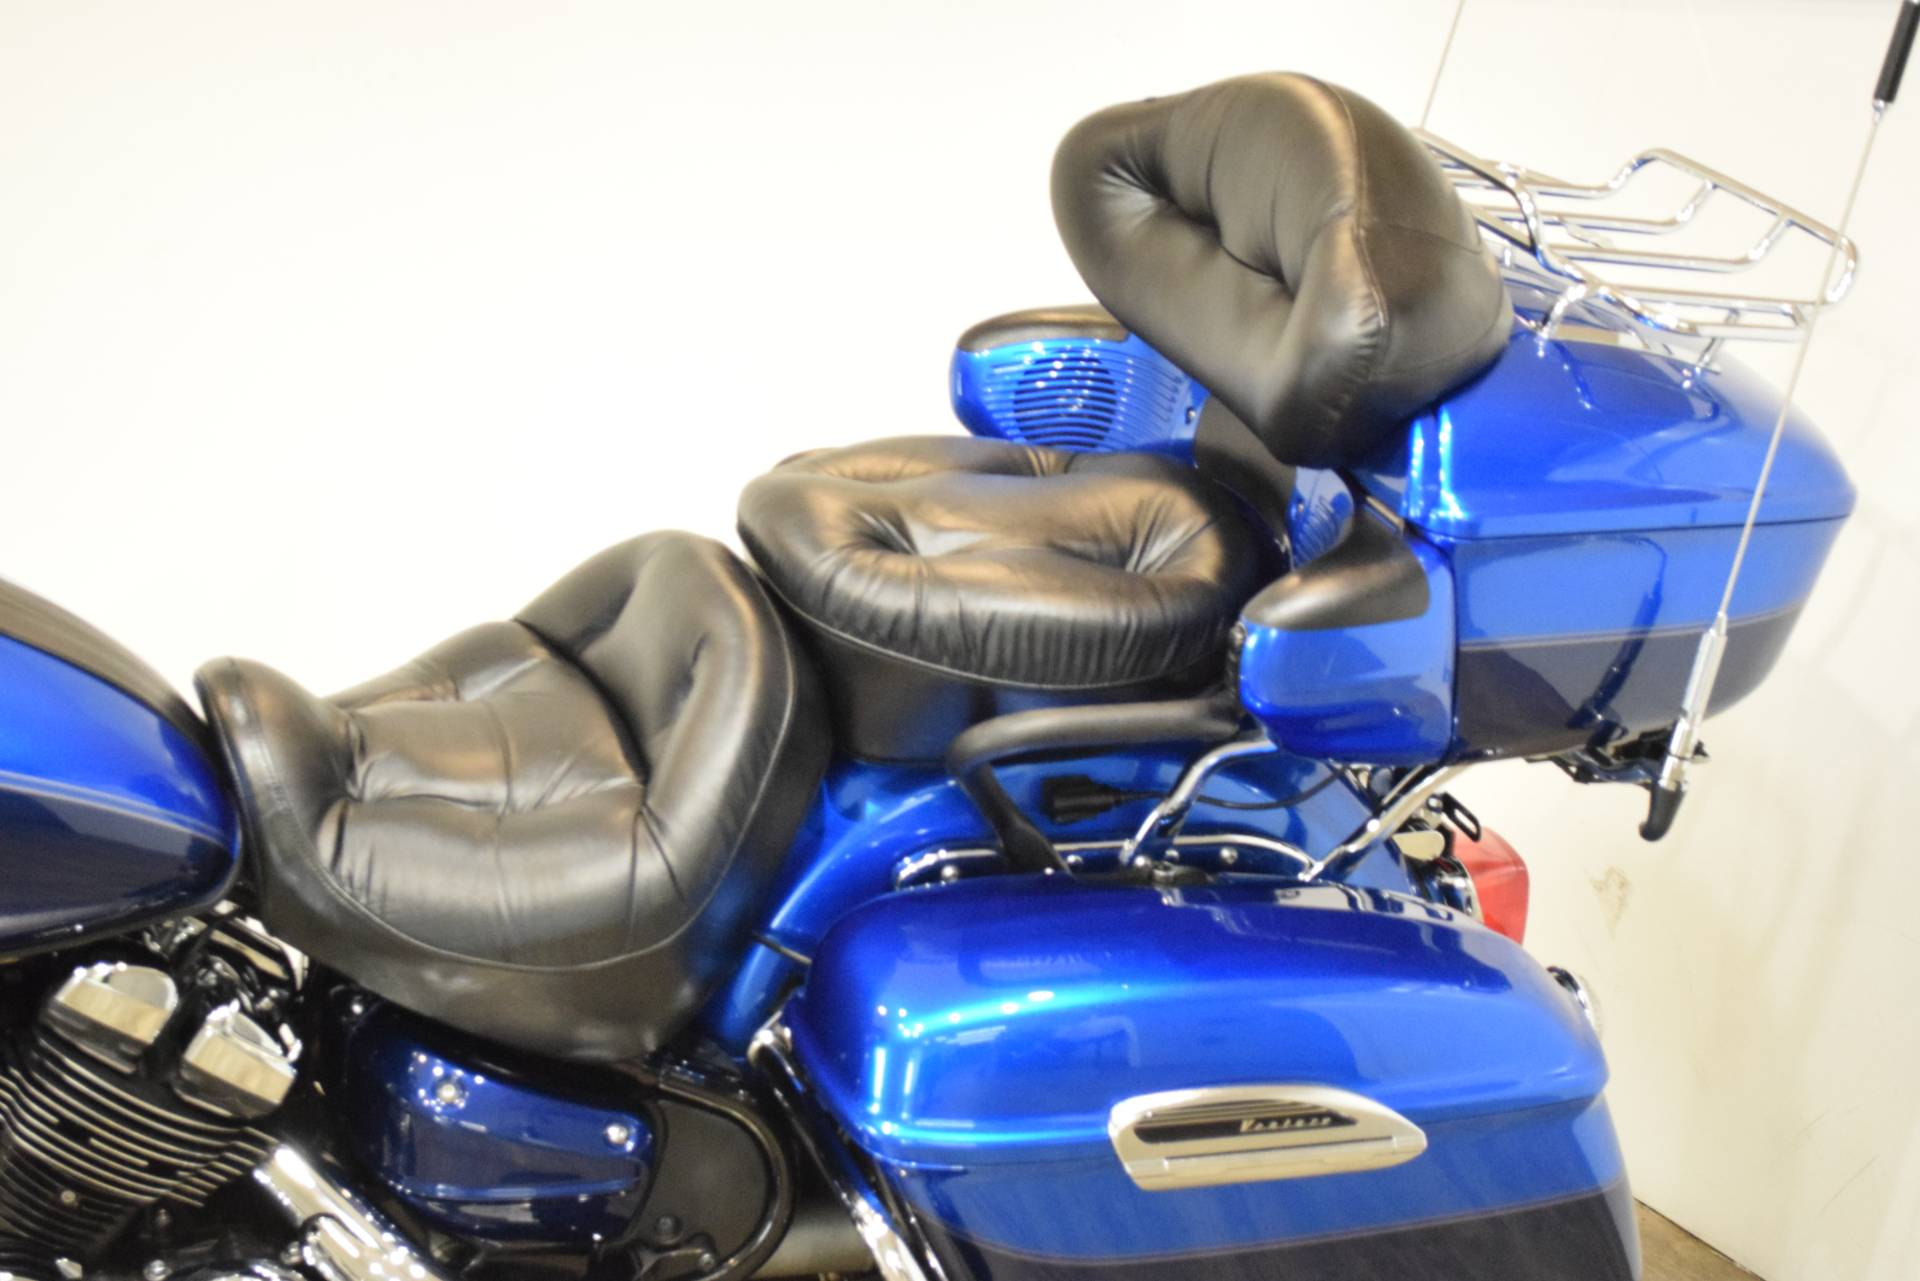 2011 Yamaha Royal Star Venture S in Wauconda, Illinois - Photo 17